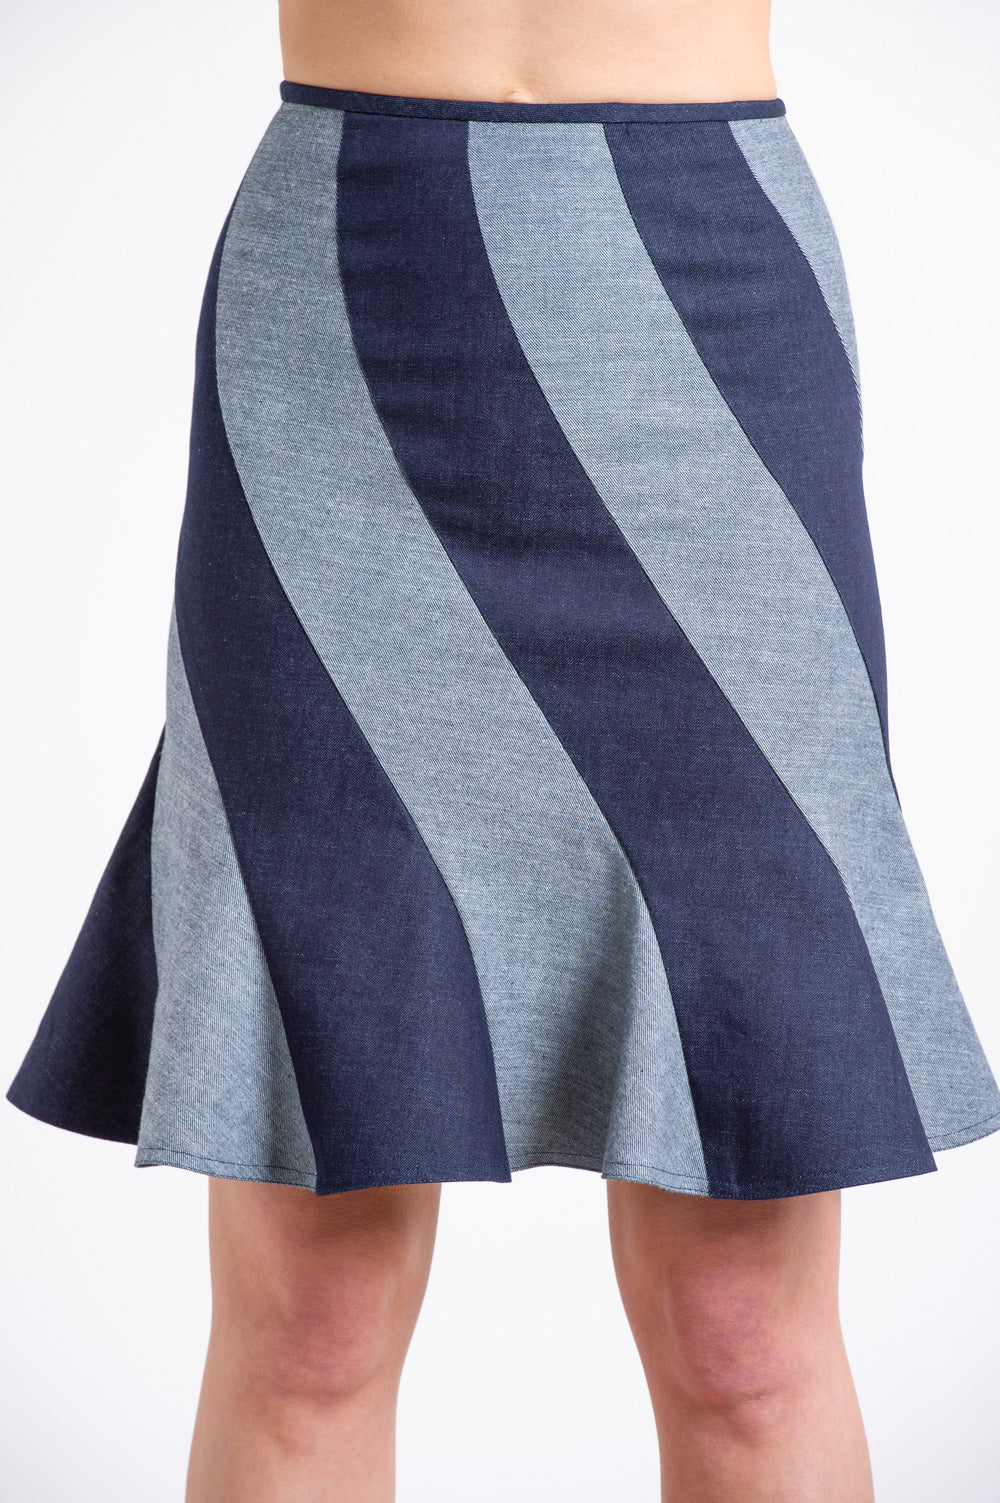 Indigo Denim Swirl Skirt